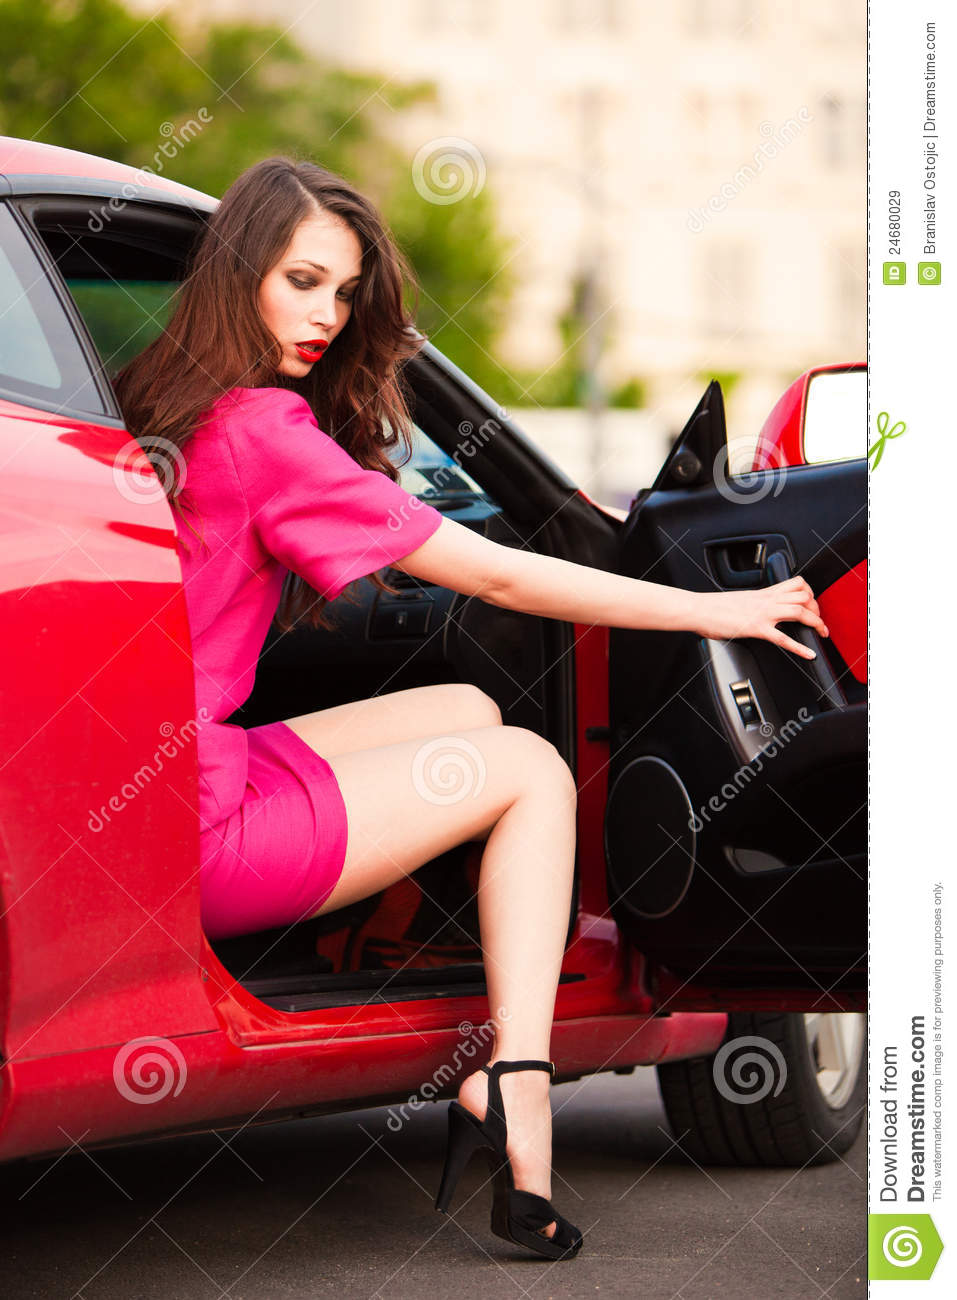 Fast And Furious Cars Wallpaper Free Download Stylish Woman In Red Car Stock Image Image Of Heels